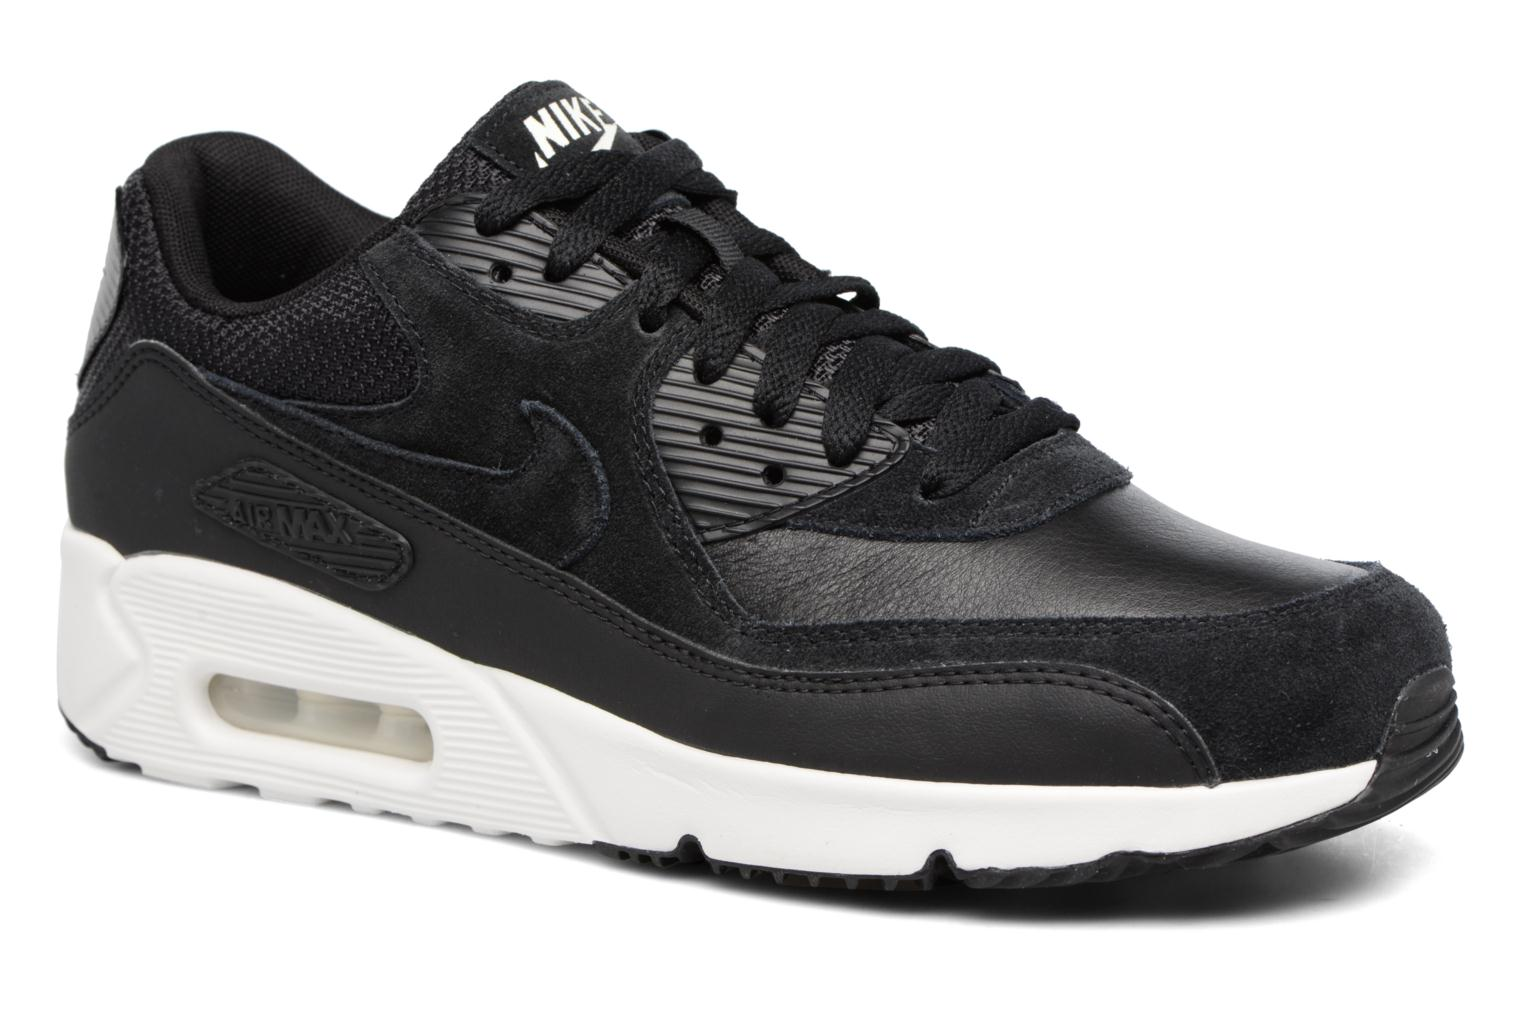 Air Max 90 Ultra 2.0 Ltr Black/Black-Summit White